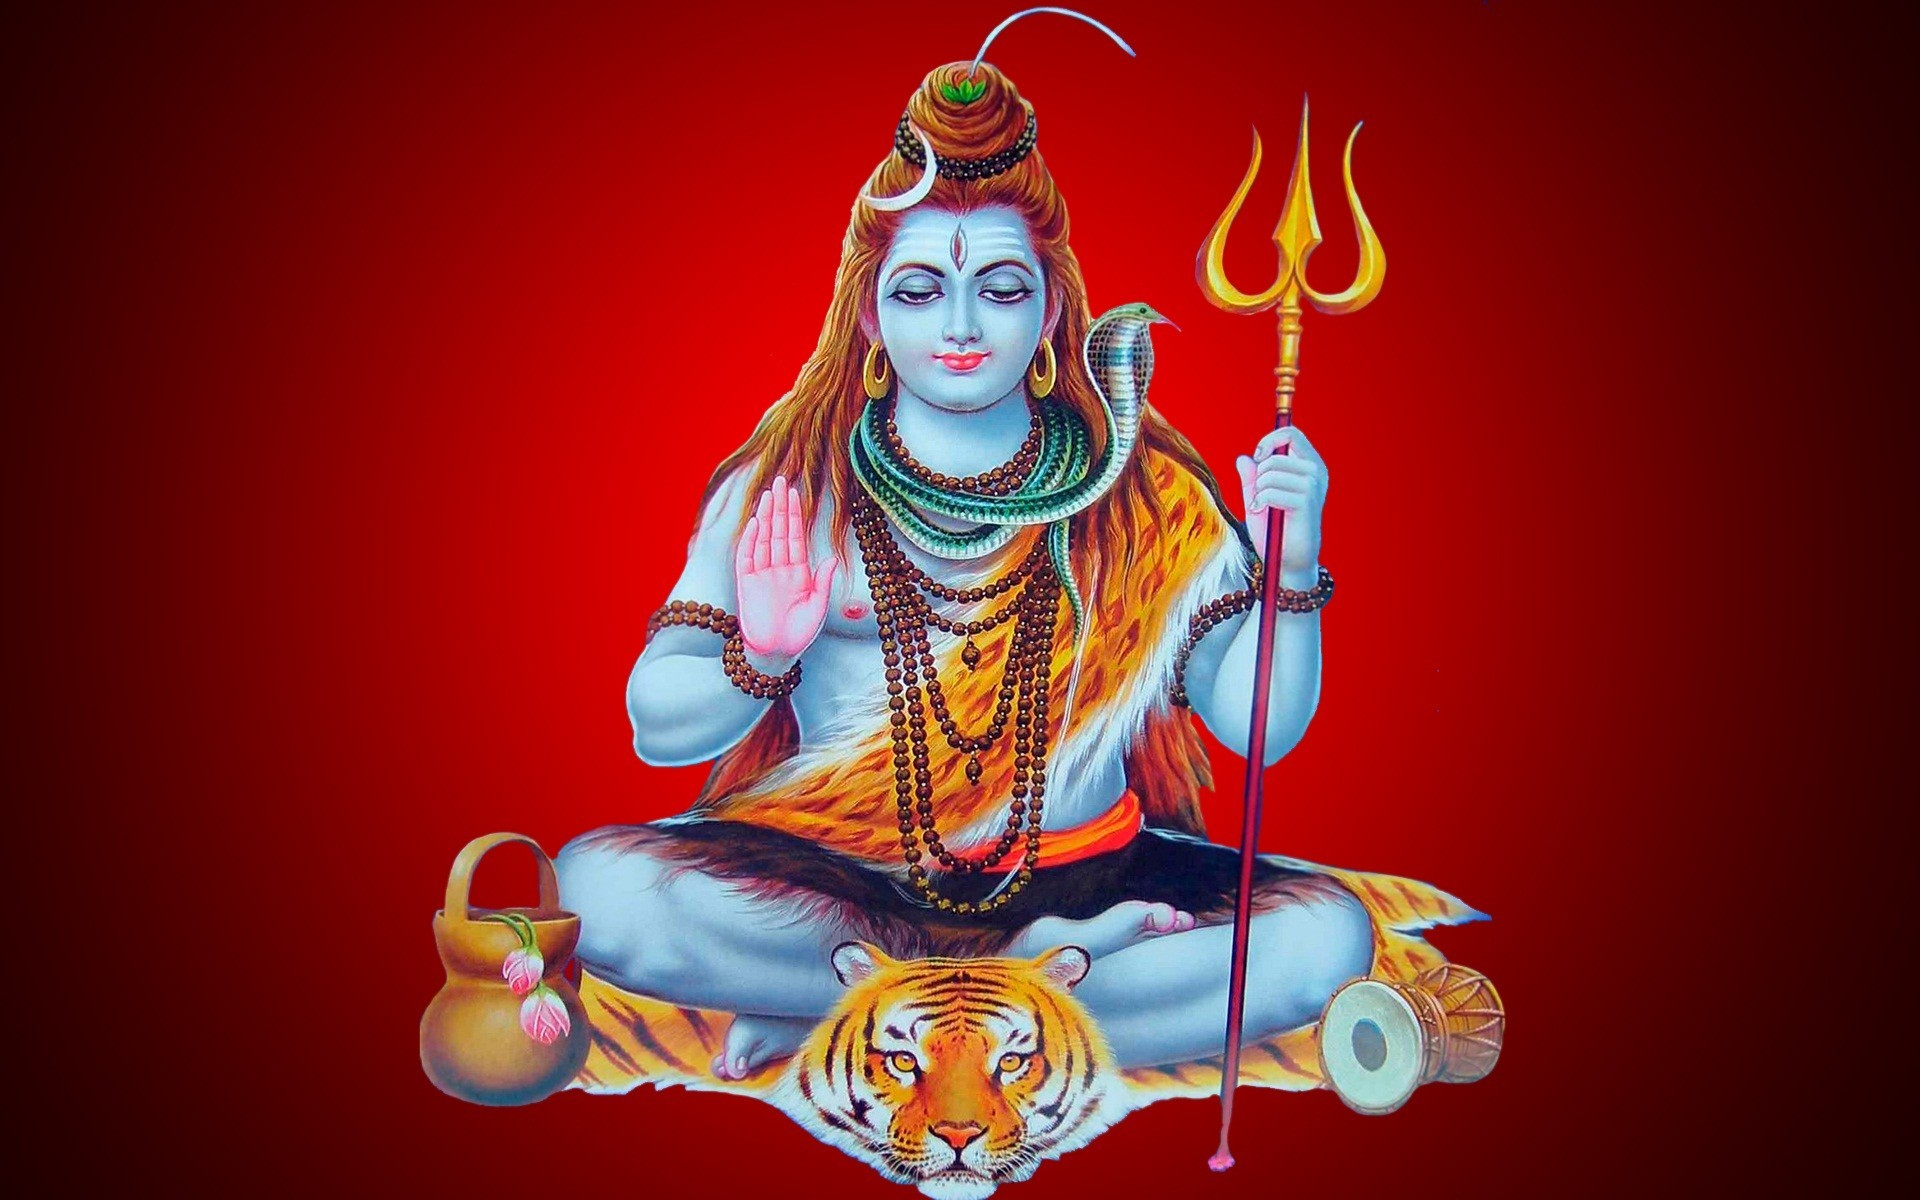 Lord Shiva Wallpapers 3d: Lord Shiva Wallpapers High Resolution (73+ Images